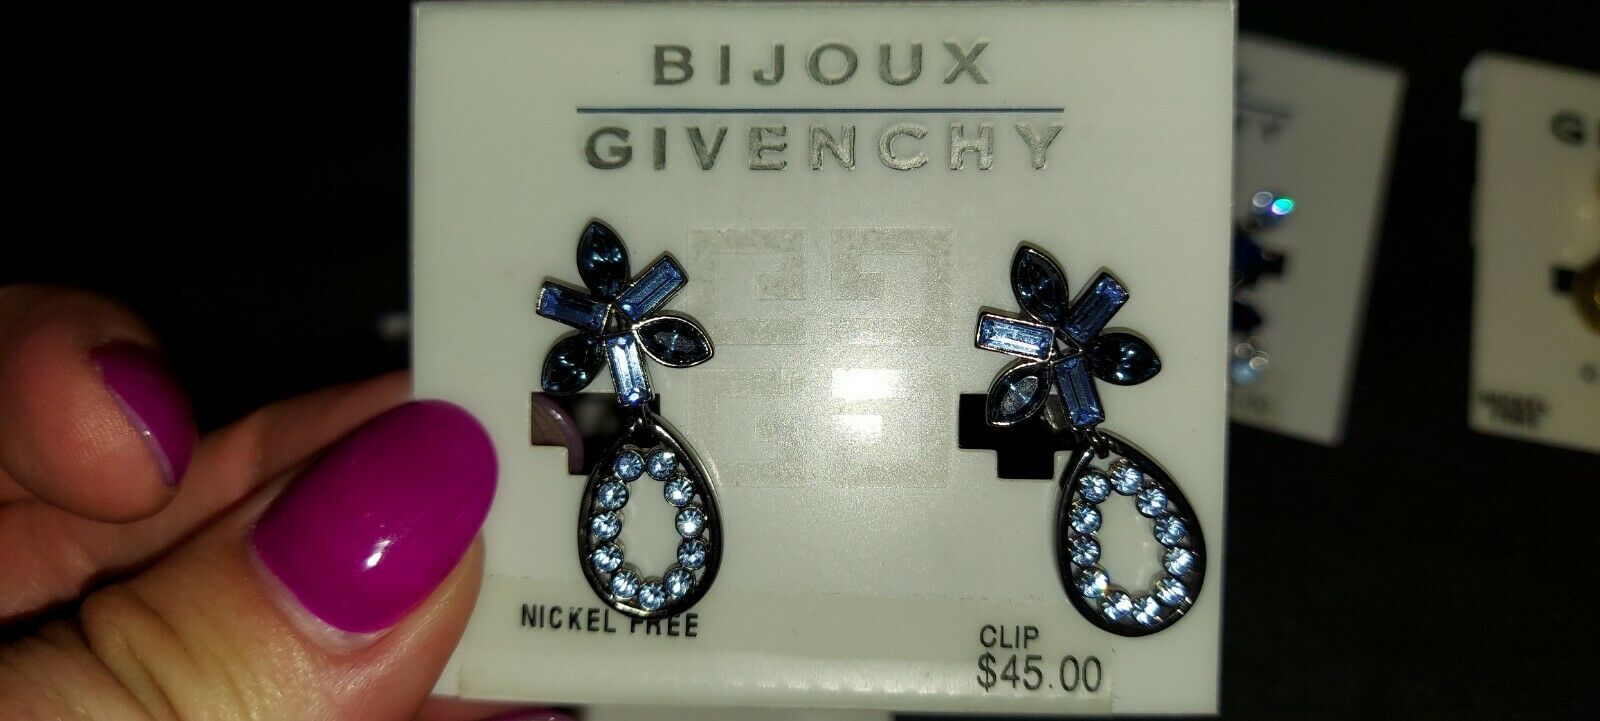 givenchy clip earrings - image 4